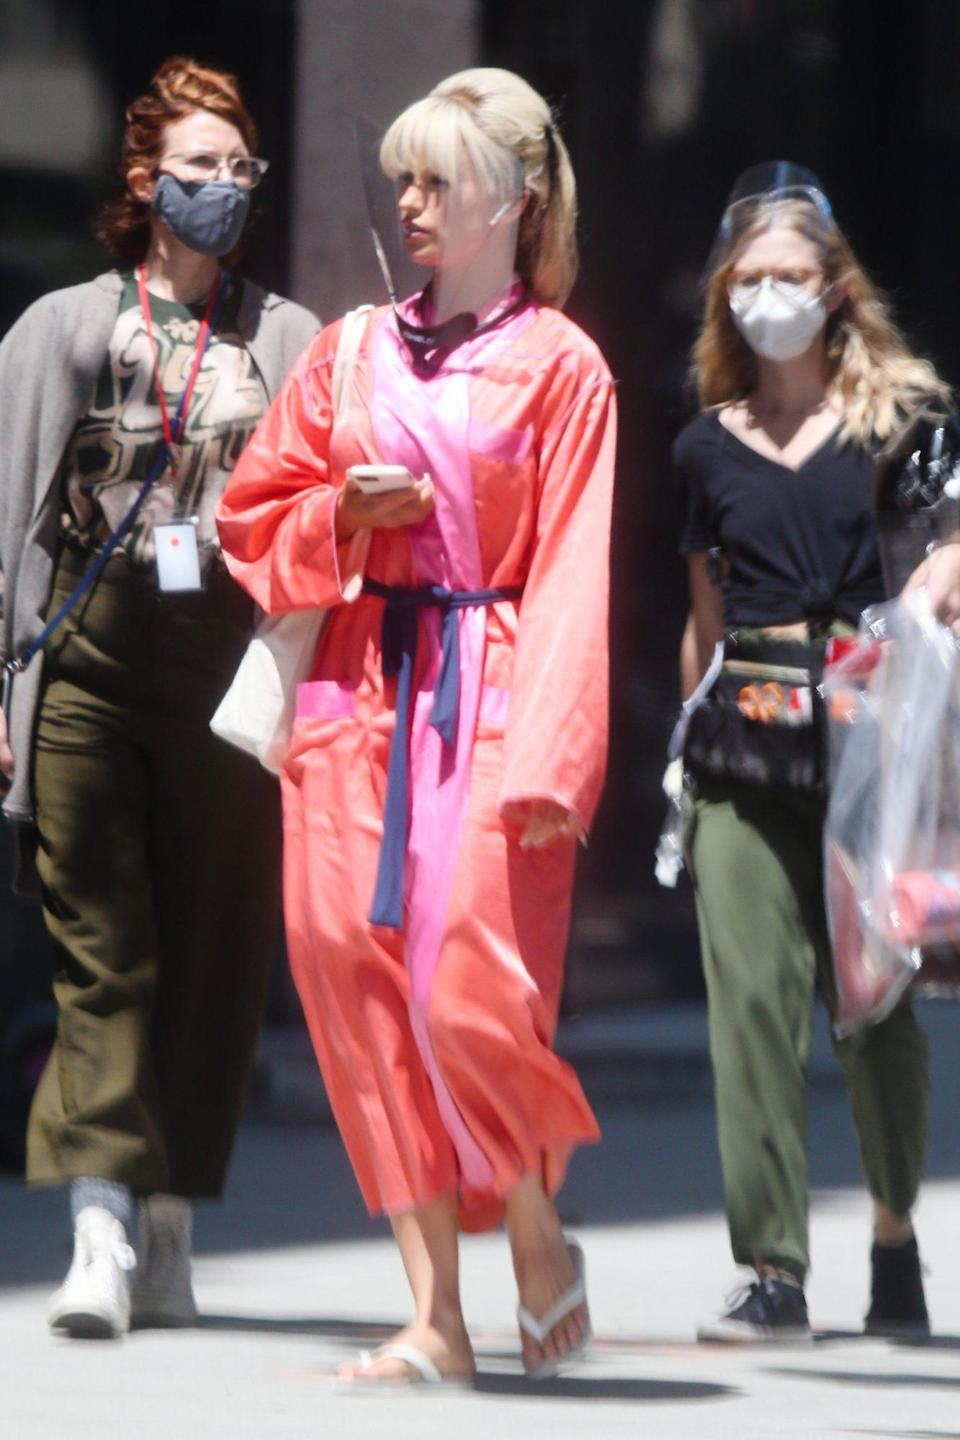 <p>Lily James gets into character as Pamela Anderson on the set of Hulu's <em>Pam & Tommy</em> on Monday in L.A.</p>